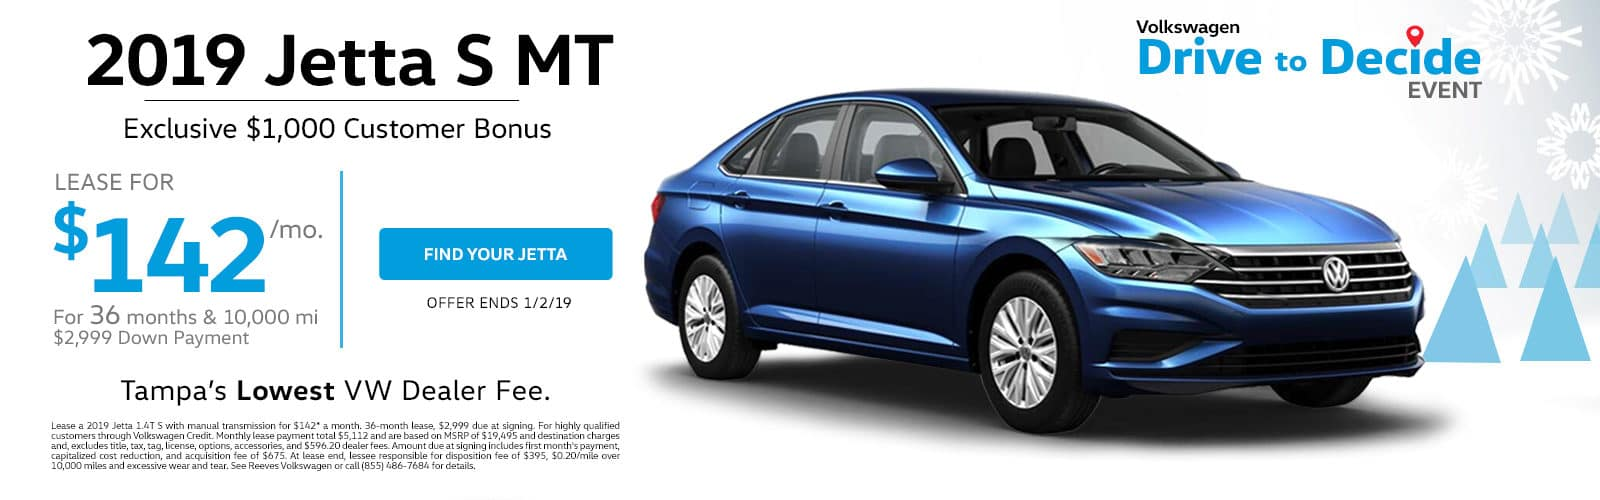 2019 Jetta Lease Special